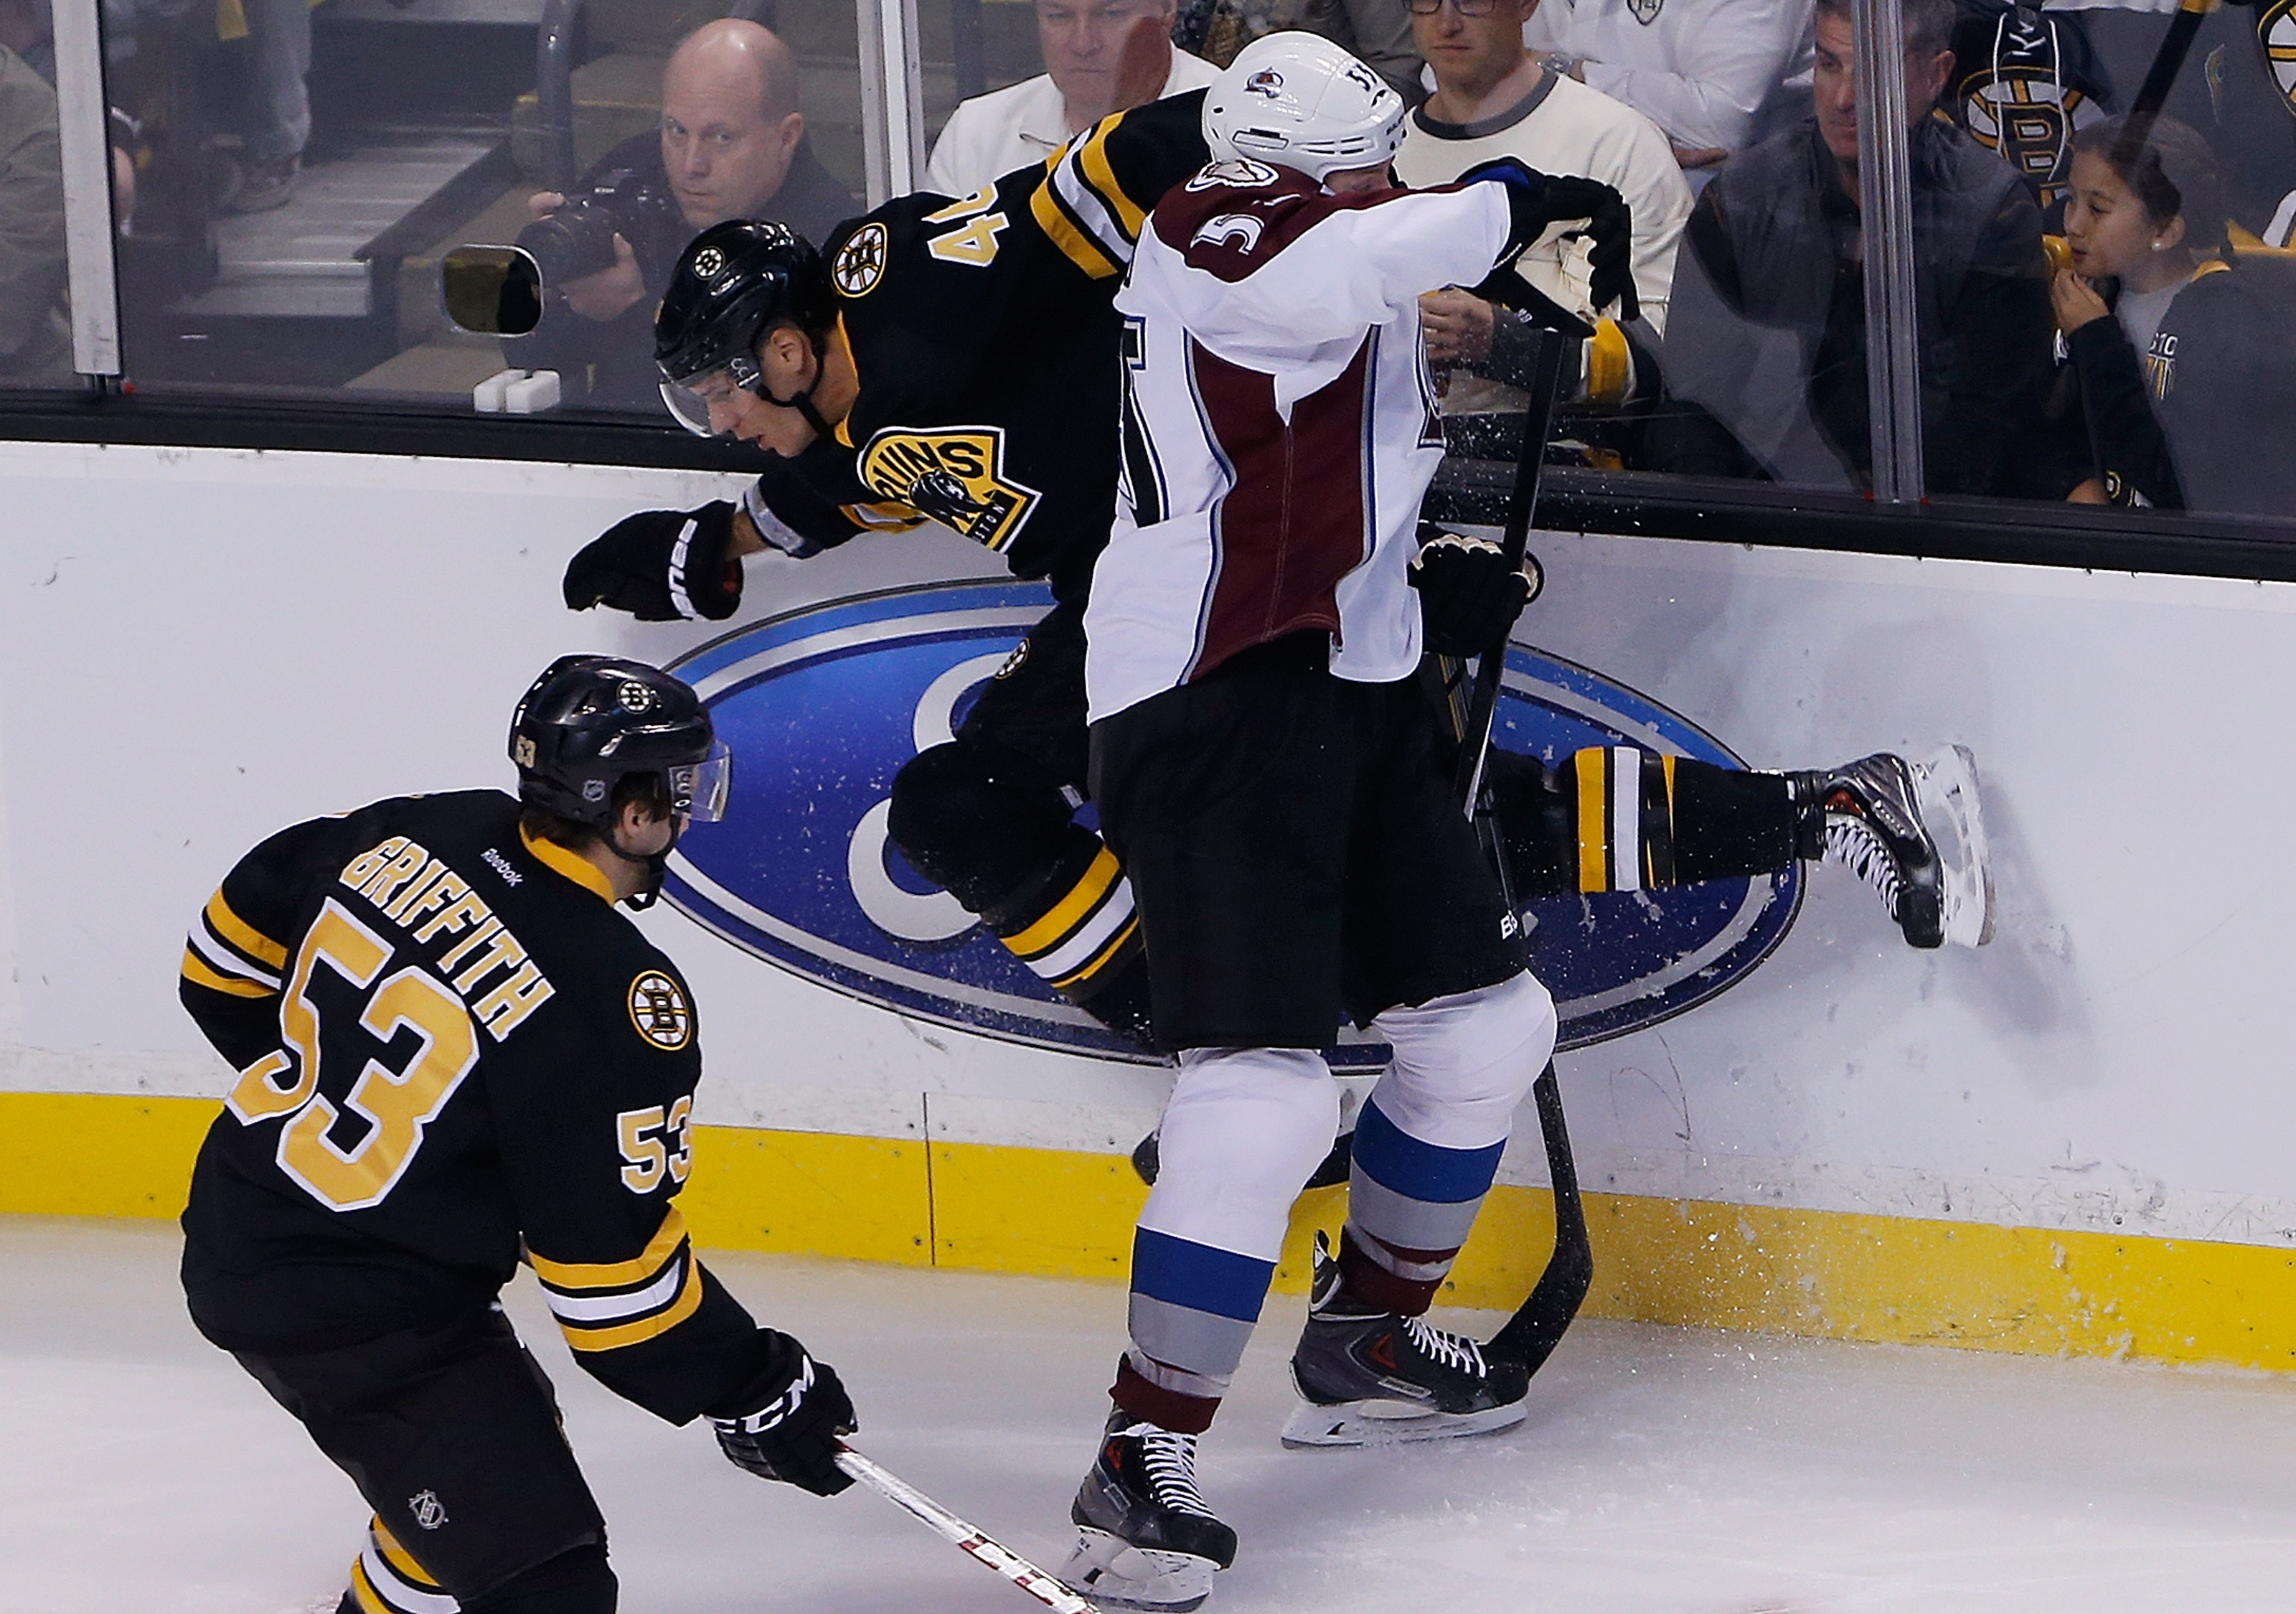 Bruins Call Up Seth Griffith Give Him Spot On First Line The Boston Globe